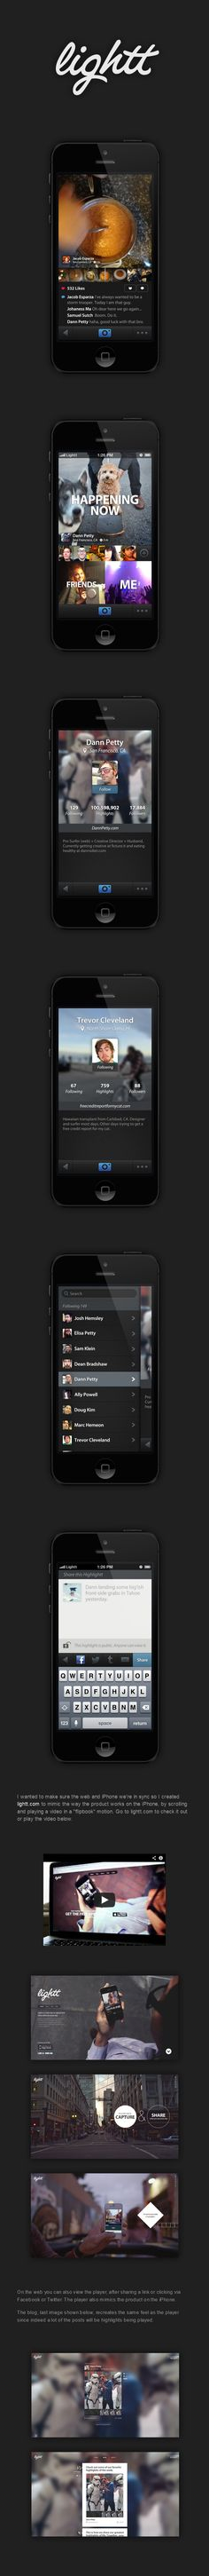 "Lightt iPhone App by Dann Petty, via Behance *** "" The creation of the Lightt. Everything from branding to iPhone 4, iPhone 5 app design as well as the entire web presence. """